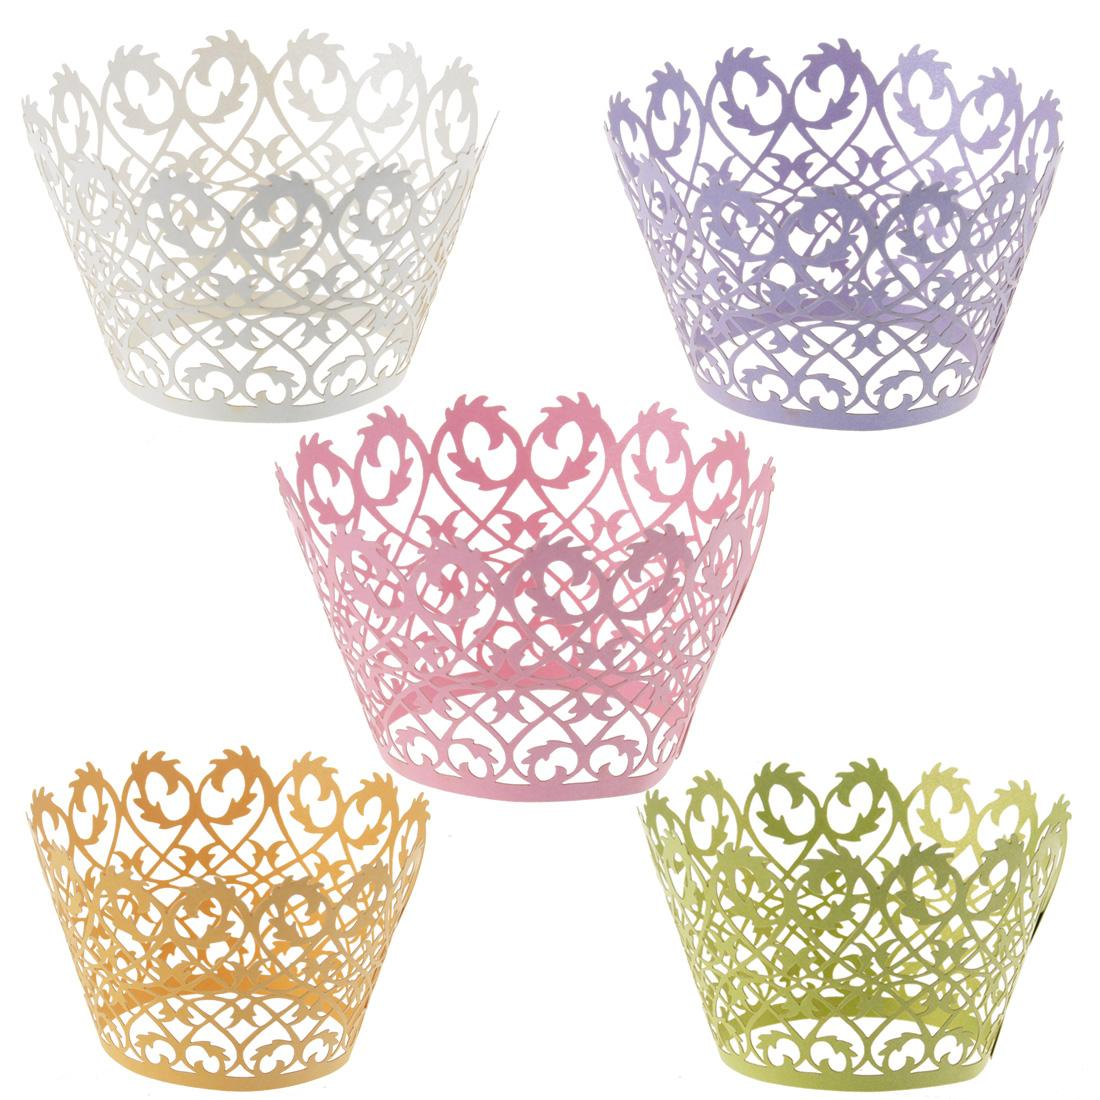 120pcs Laser Cut Cupcake Wrapper Liners Bakeware Muffin Paper Cup Cake Wedding Gift Box Birthday Favor Baby Shower Kitchen Home Bar Decor